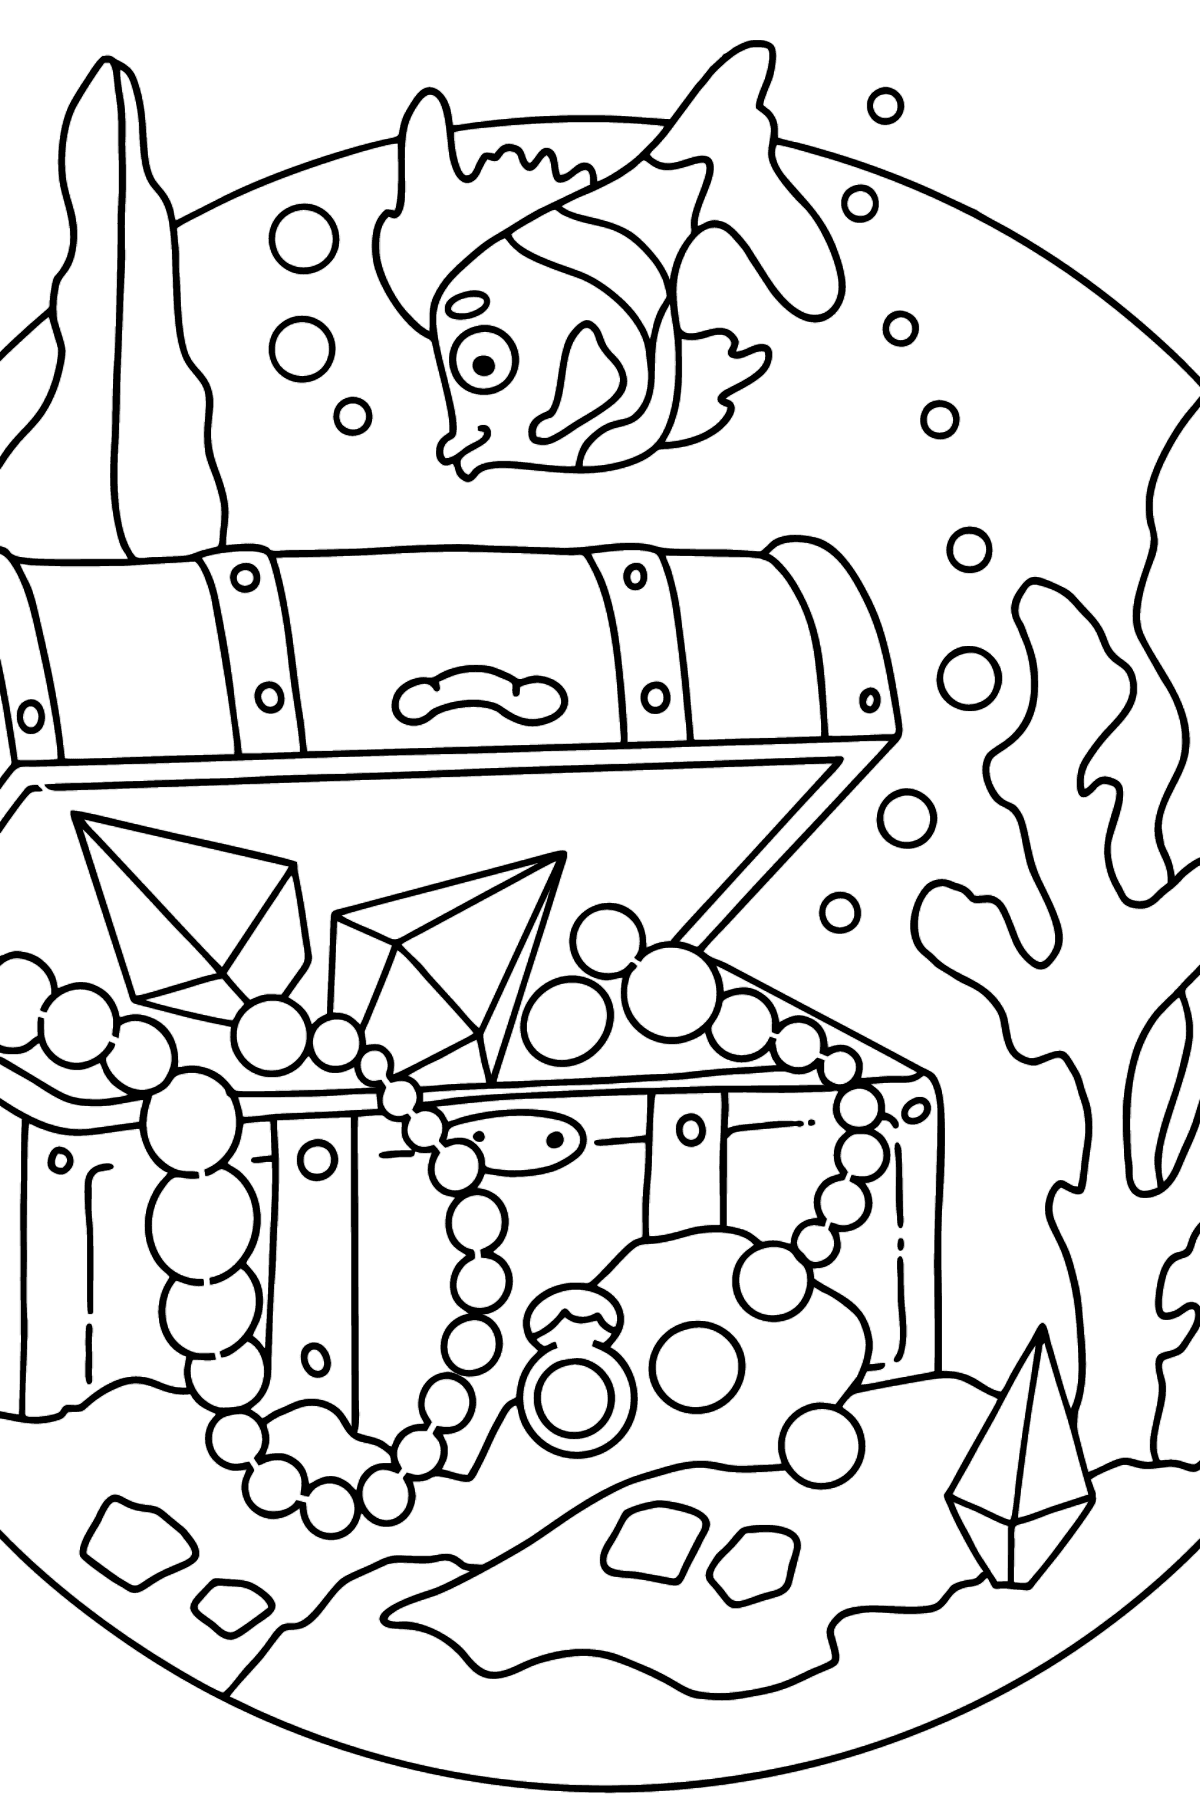 Coloring Page - A Fish is Looking for a Treasure - Coloring Pages for Kids